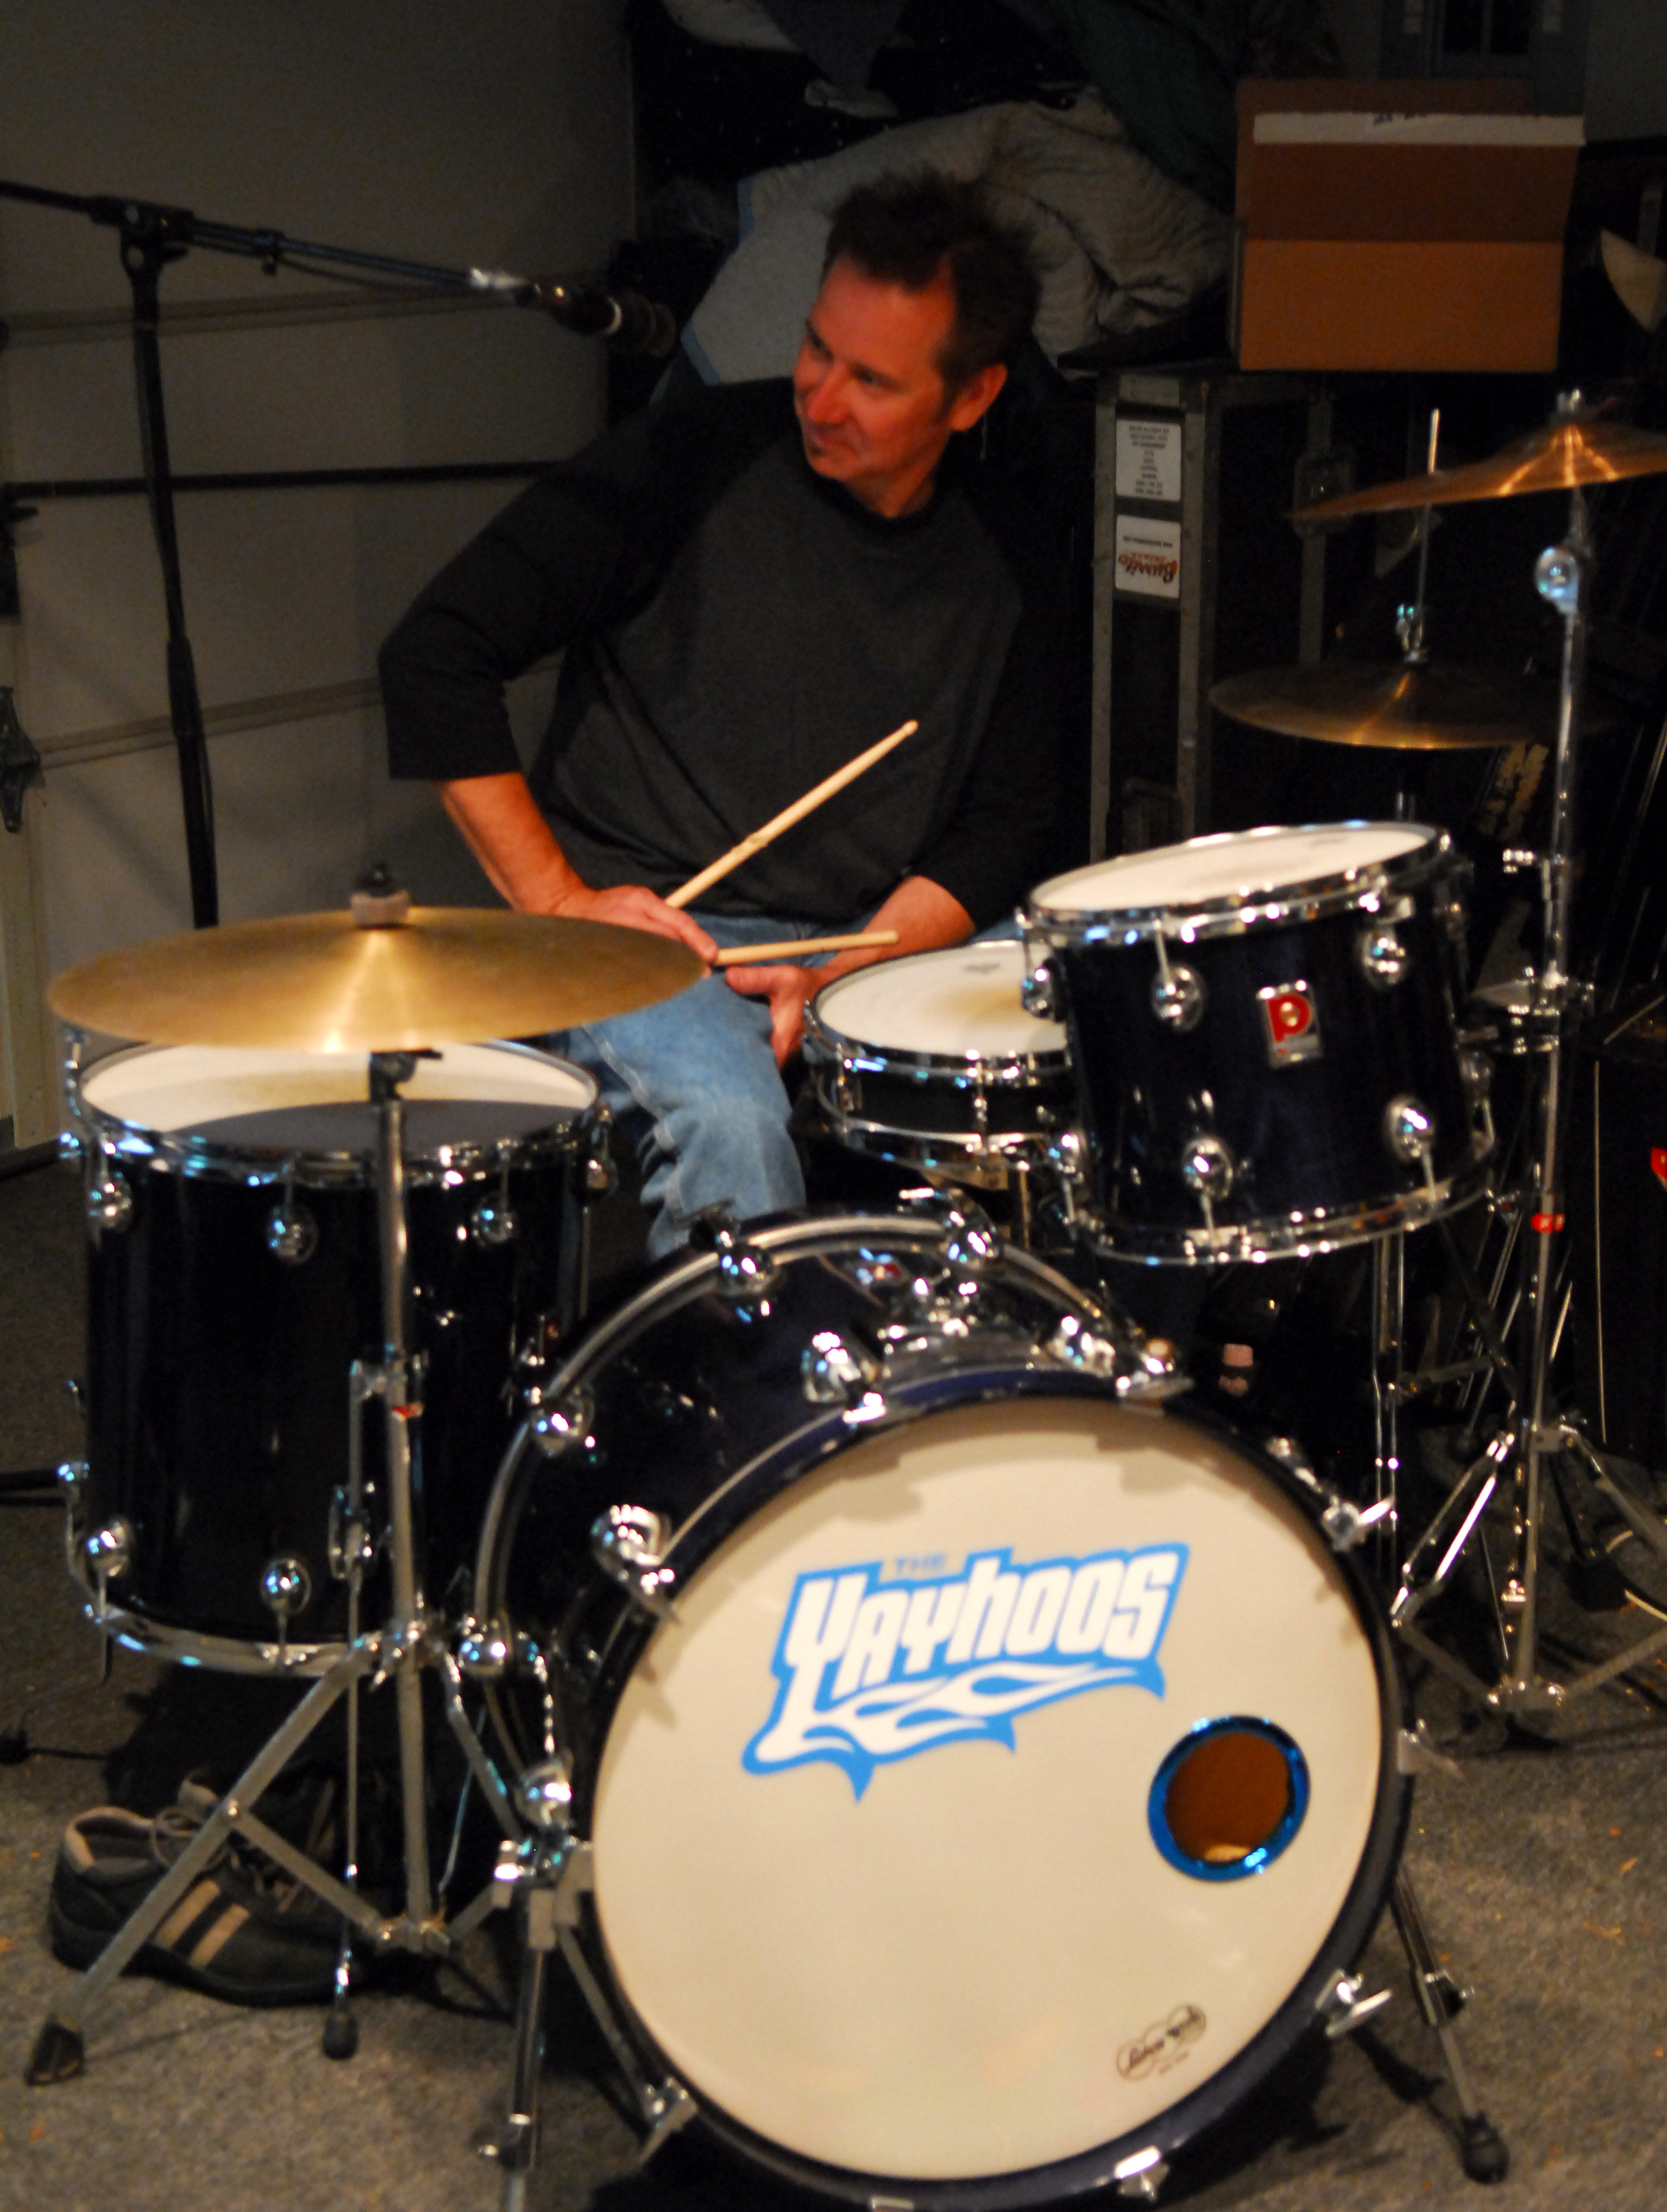 Terry is sharp behind his Premier kit